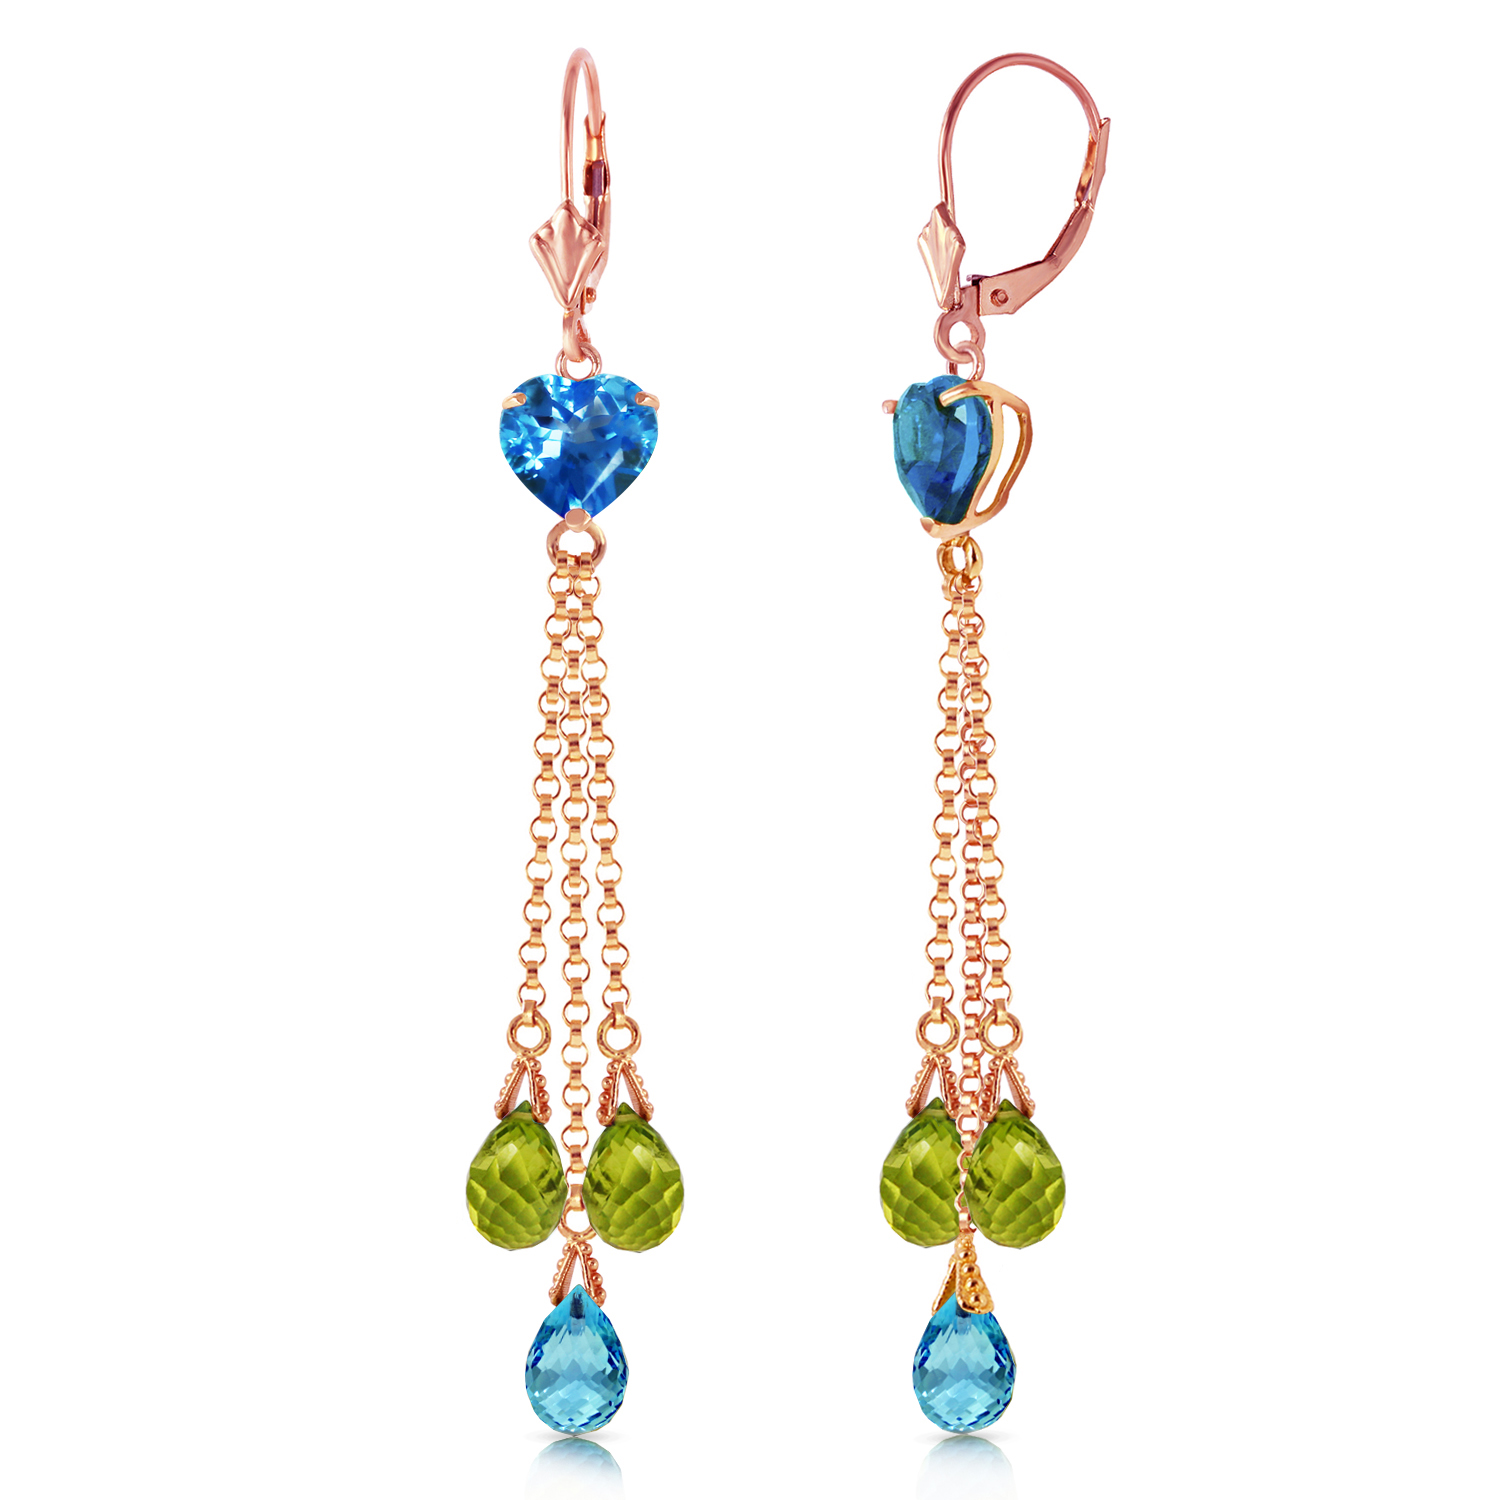 14K Solid Rose Gold Chandelier Earrings Briolette Blue Topaz